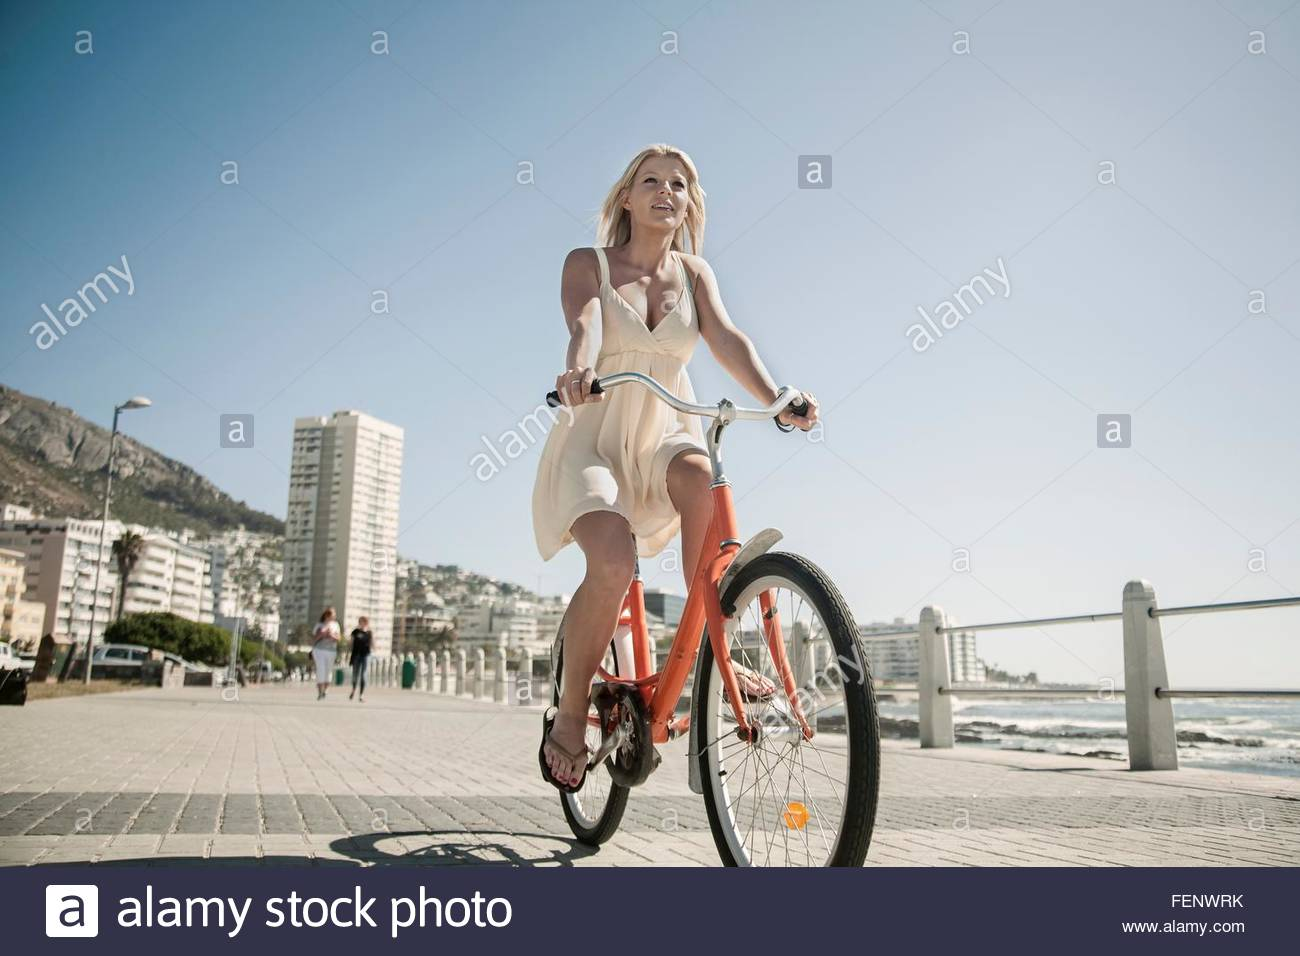 Young woman cycling on seafront, Cape Town, South Africa - Stock Image